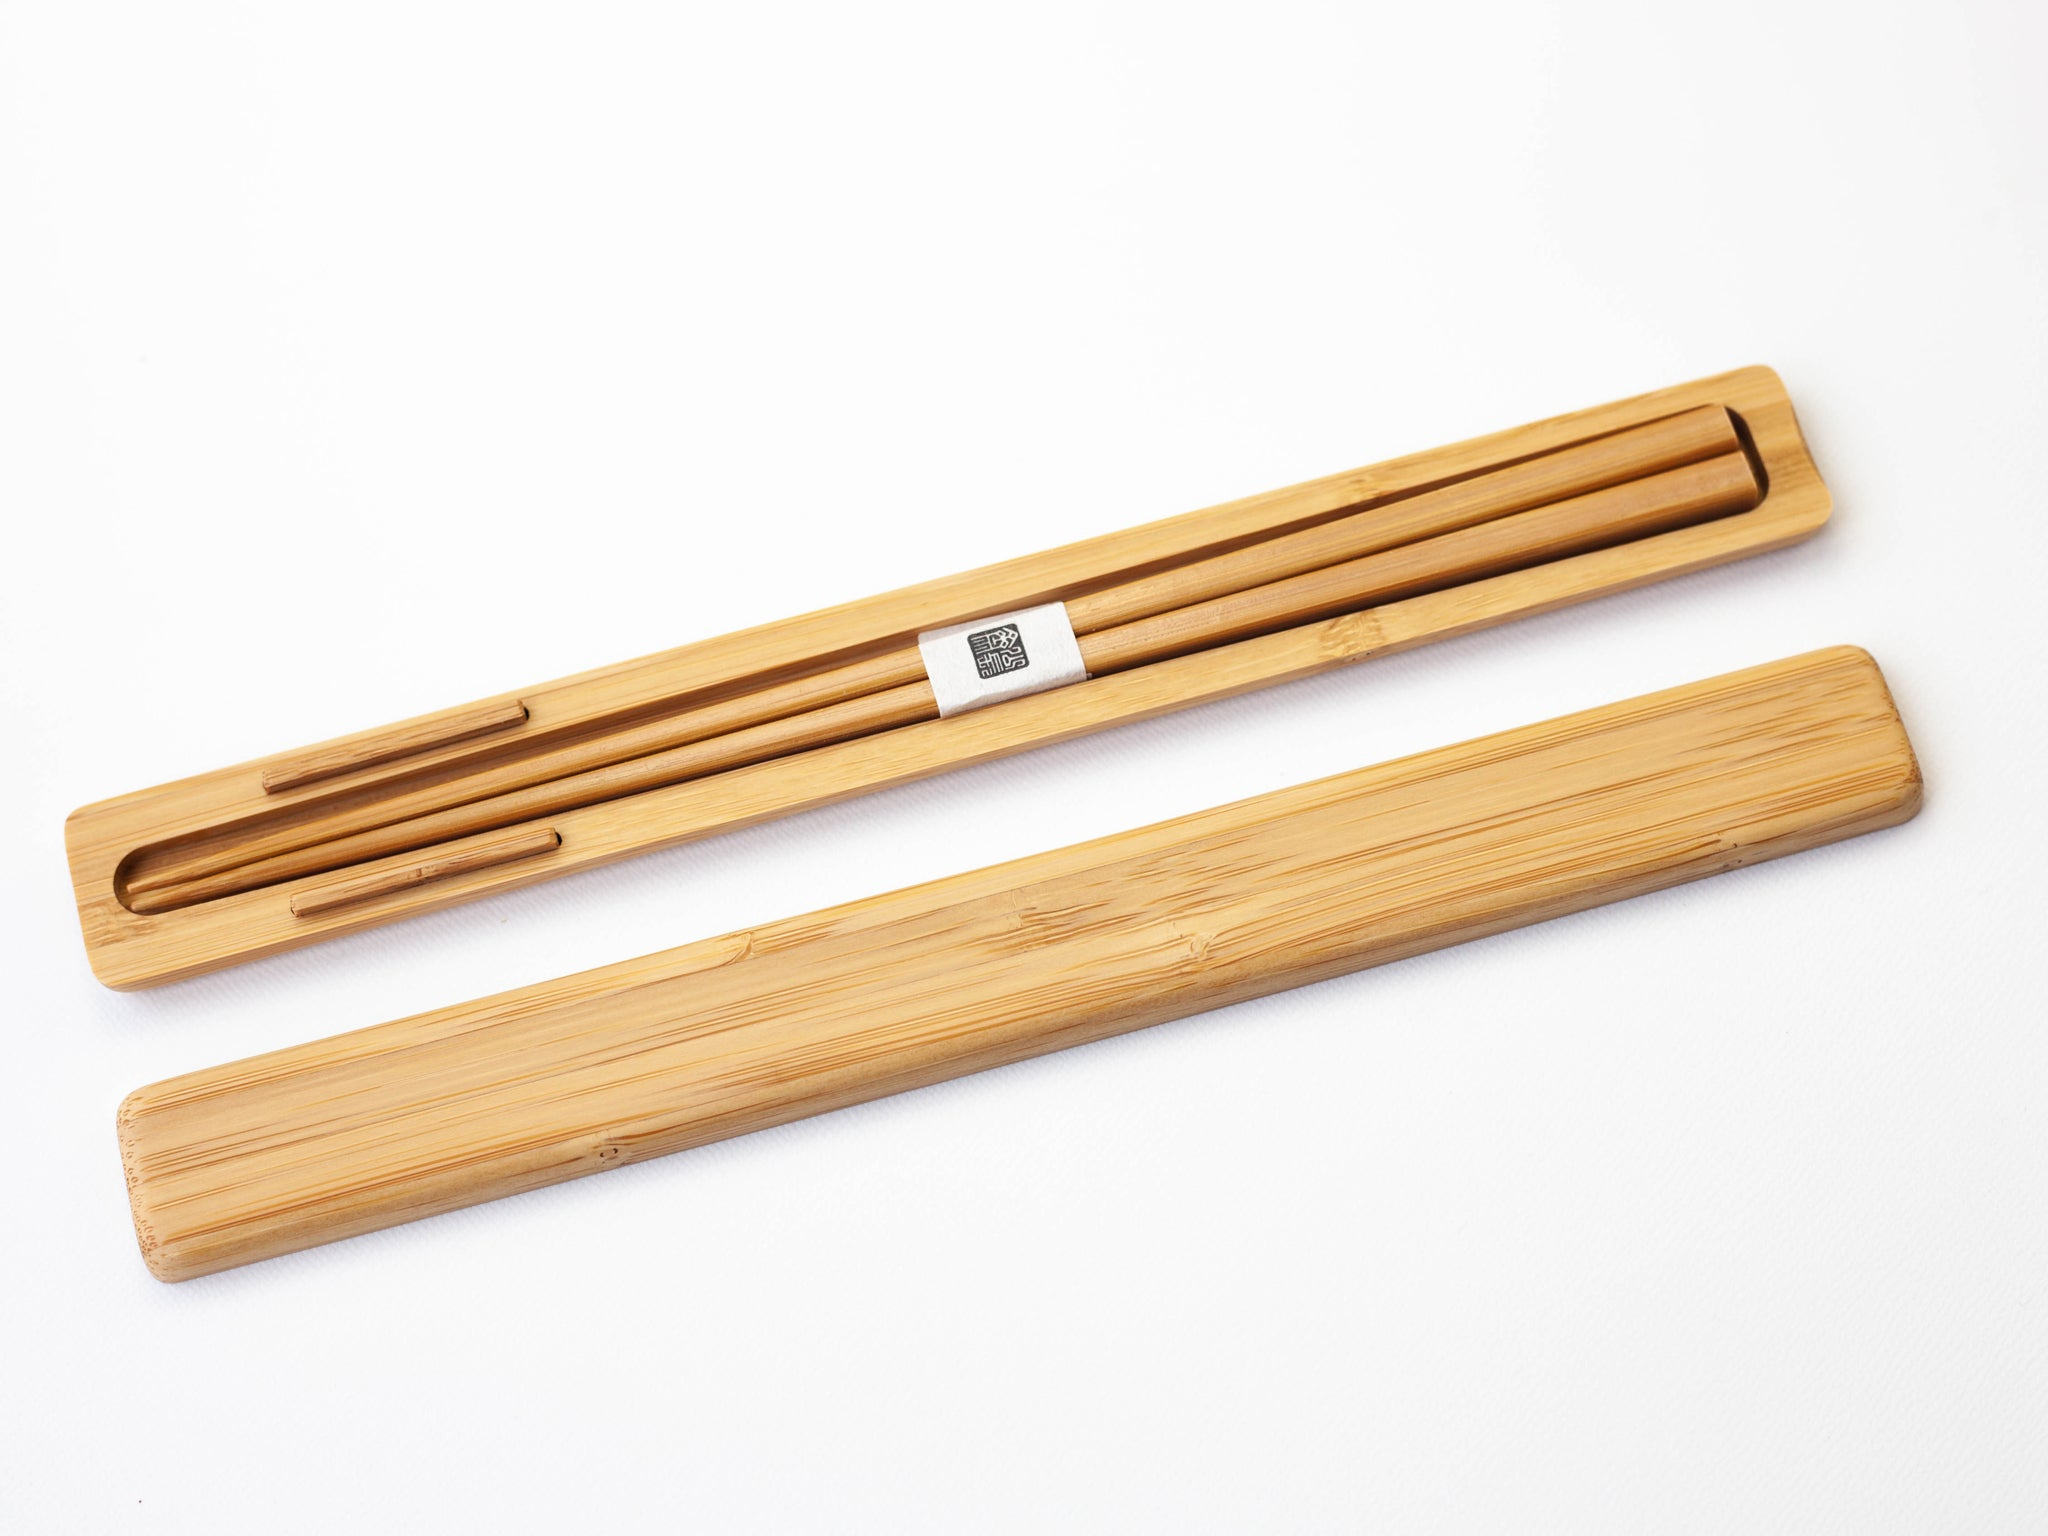 Bamboo Chopsticks Set | Natural by Kohchosai Kosuga - Bento&co Japanese Bento Lunch Boxes and Kitchenware Specialists